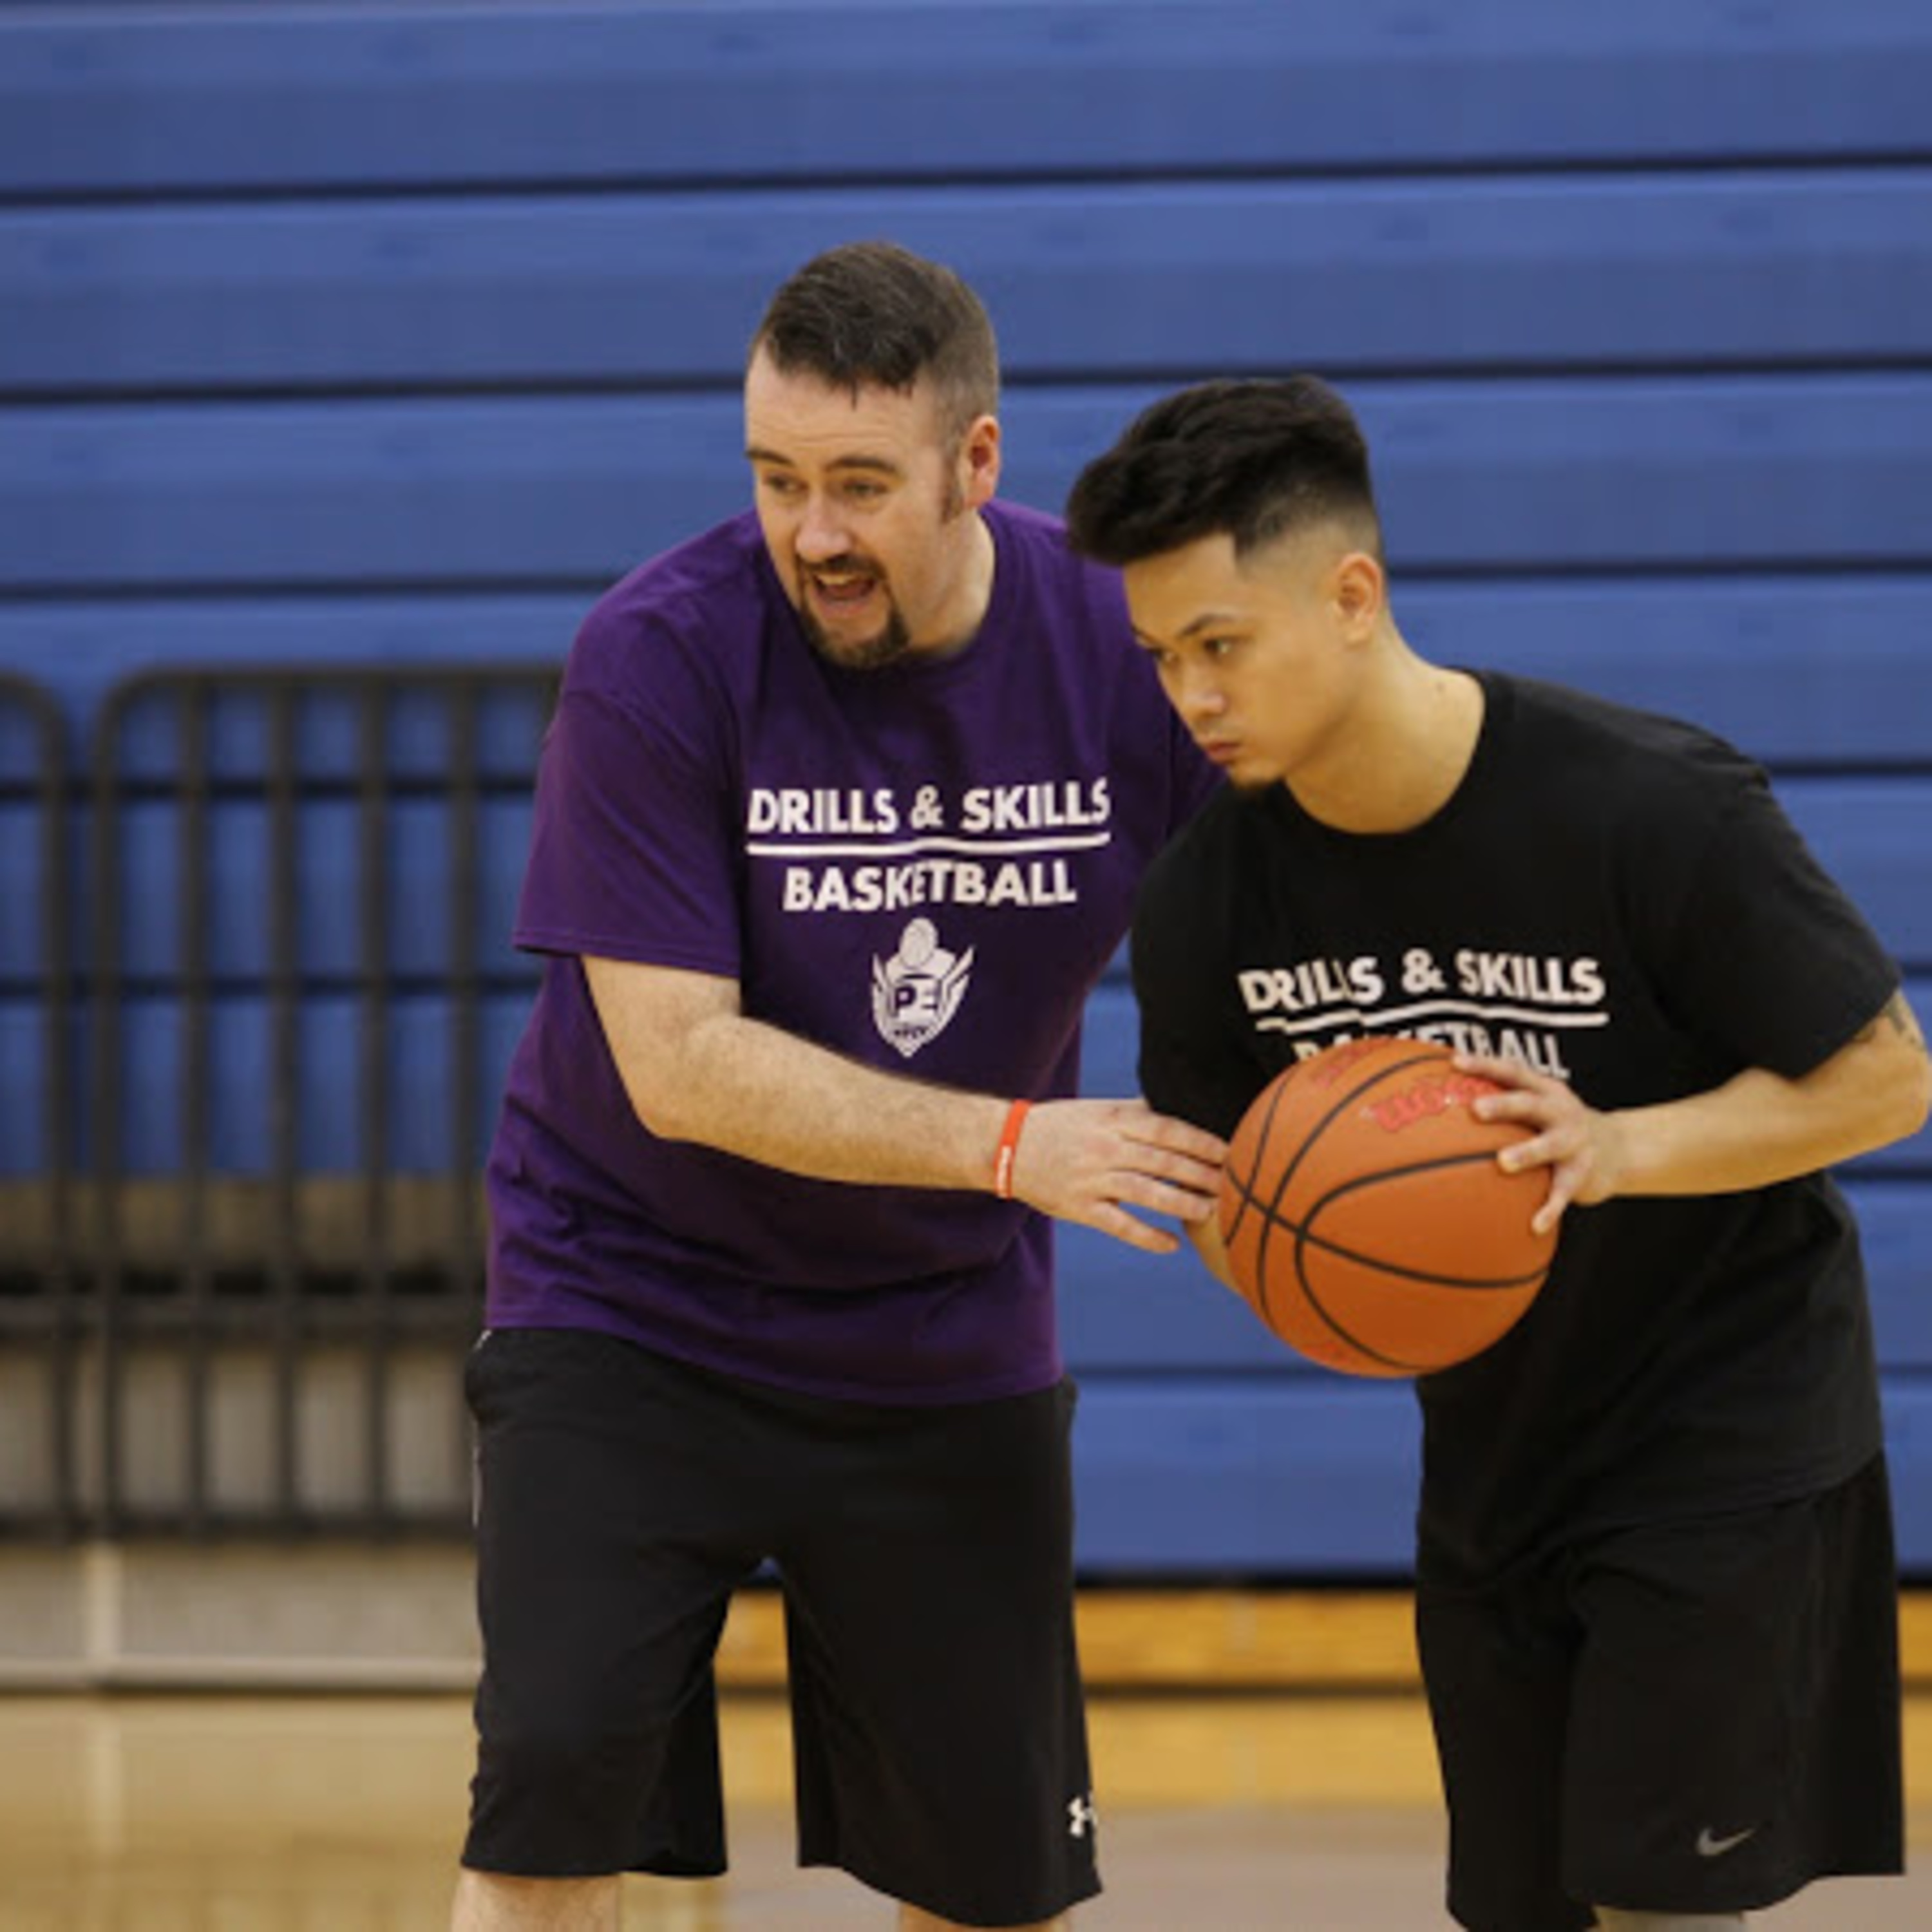 How to Improve Your Basketball IQ with Skills Trainer Paul Easton